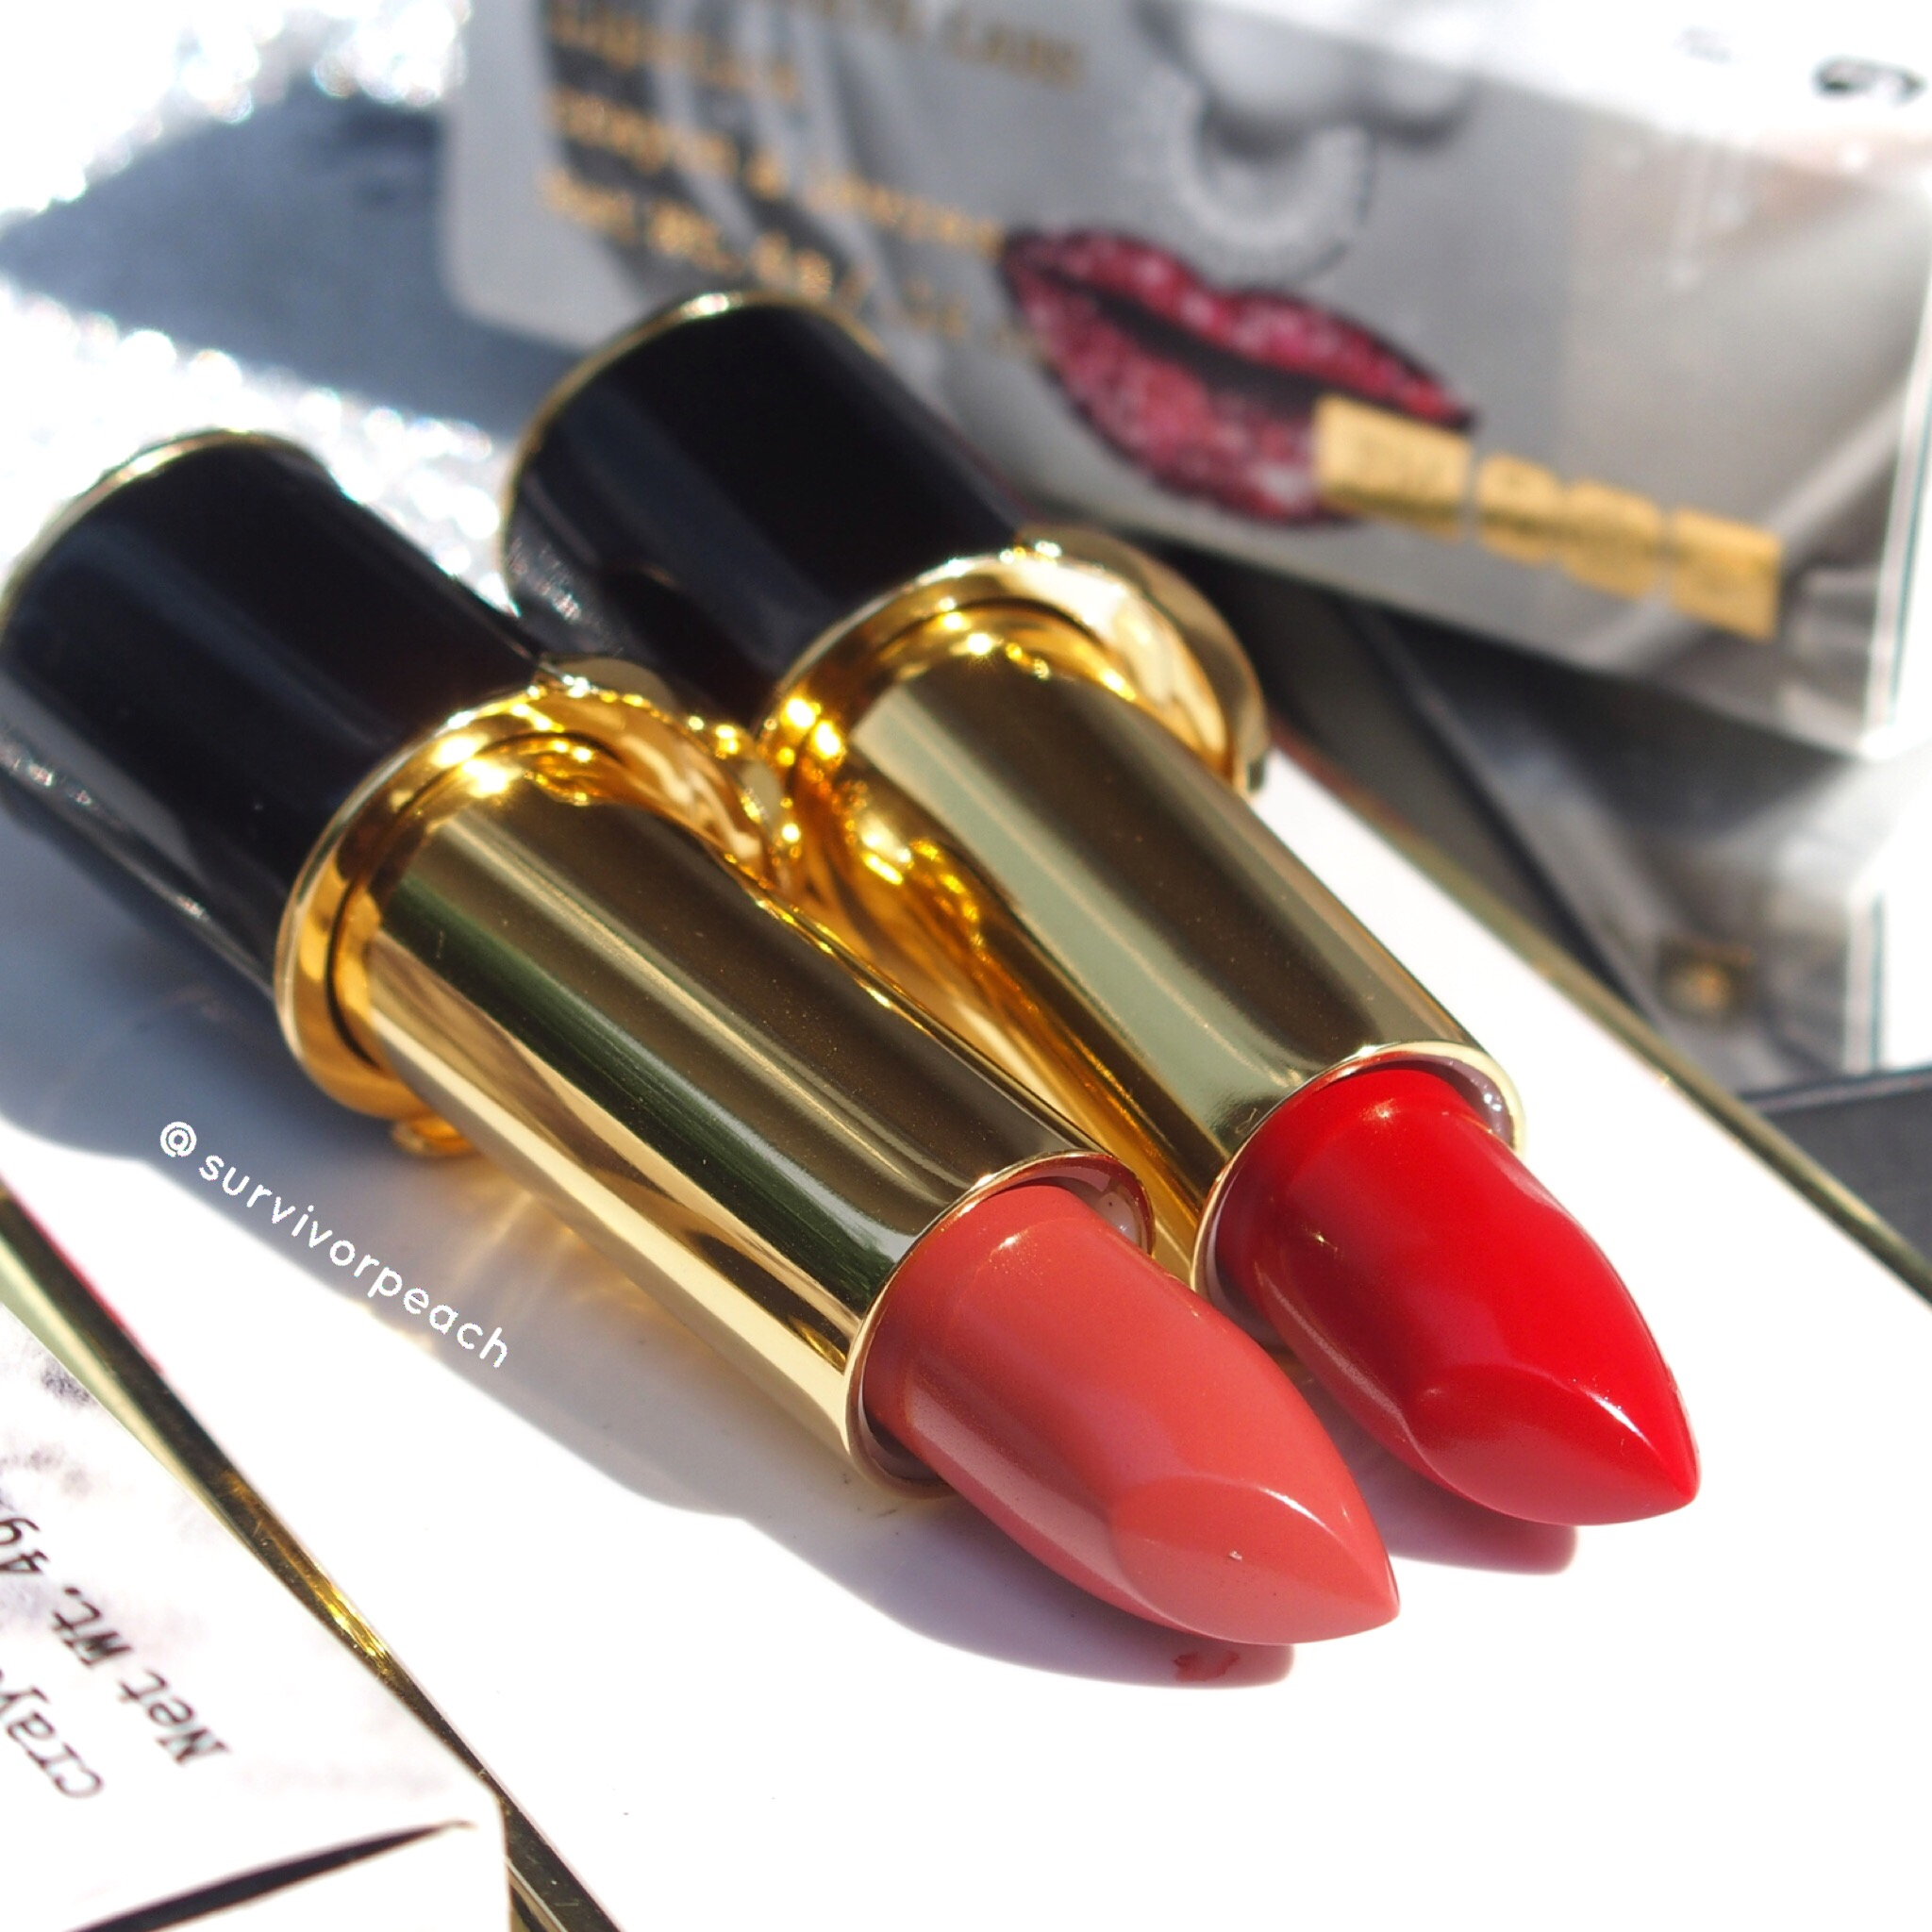 Pat McGrath Labs Luxe Trance Lipsticks in shades Tropicalia and Mcgrath Muse